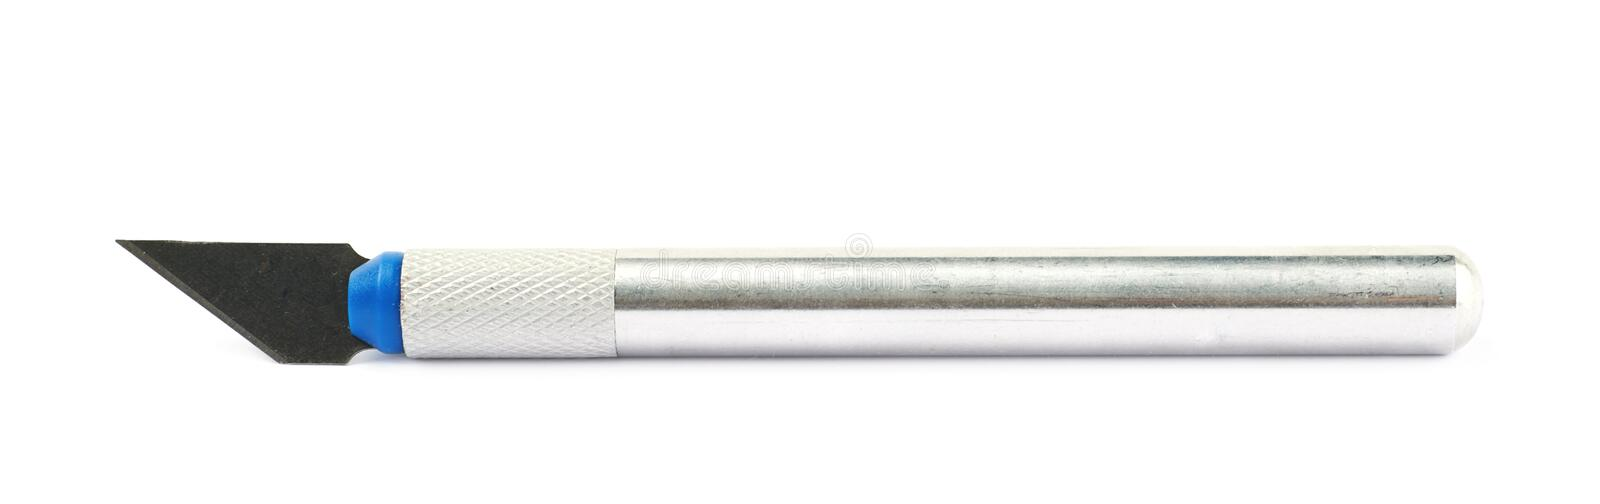 Chisel knife isolated. Metal chisel knife isolated over the white background stock photo